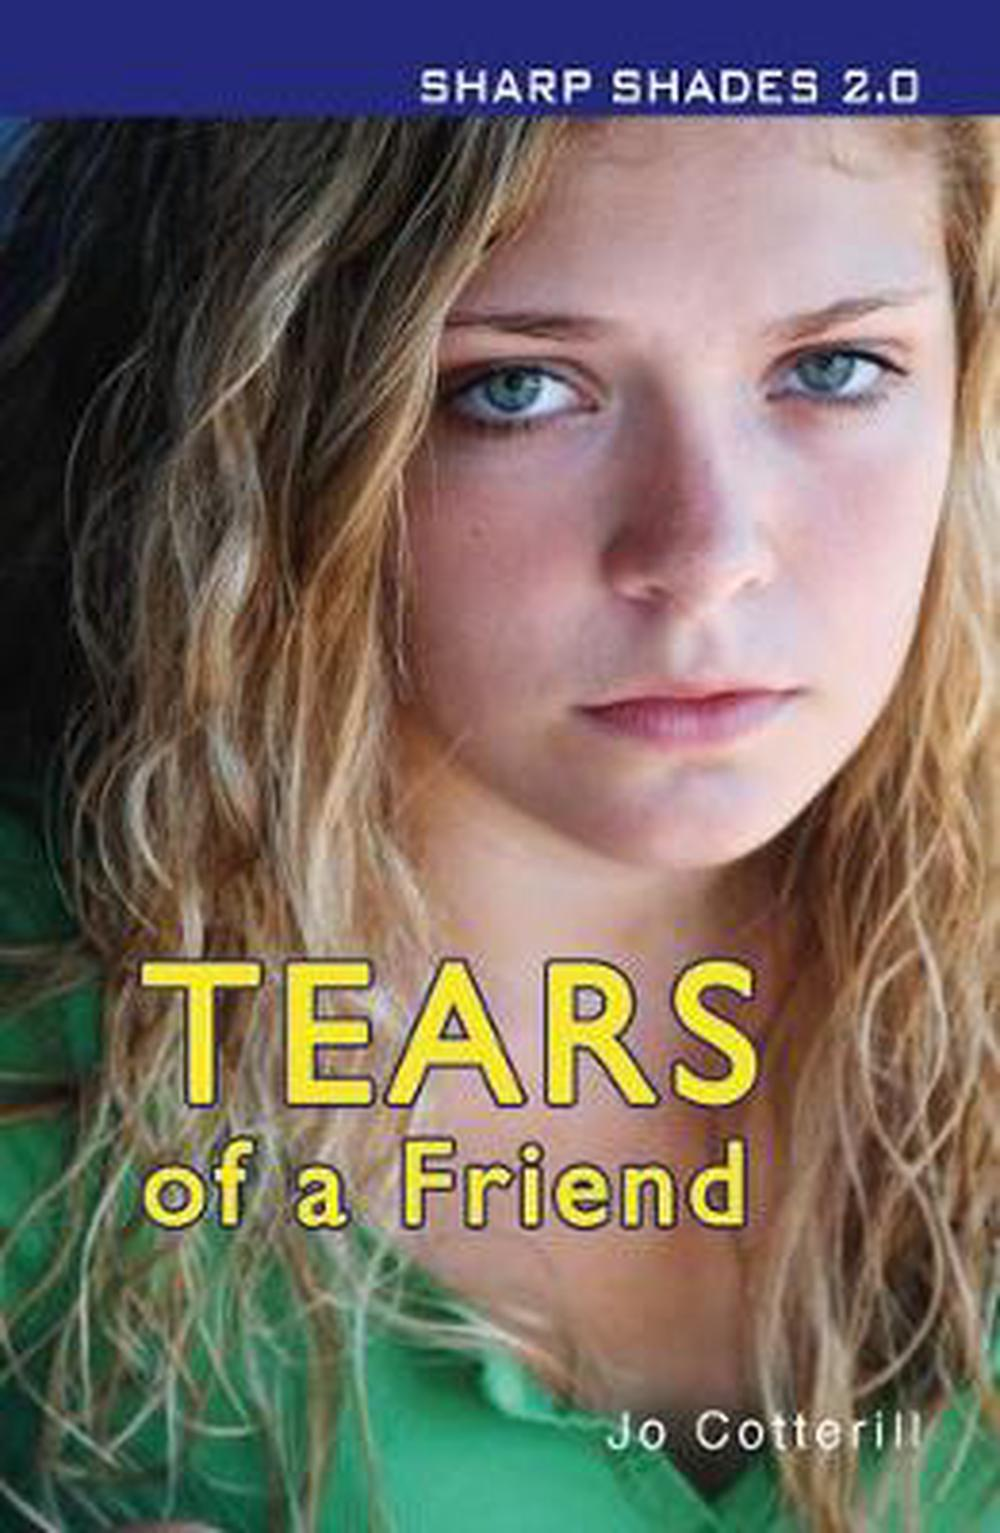 Tears-of-a-Friend-by-Joanna-Kenrick-Paperback-Book-Free-Shipping